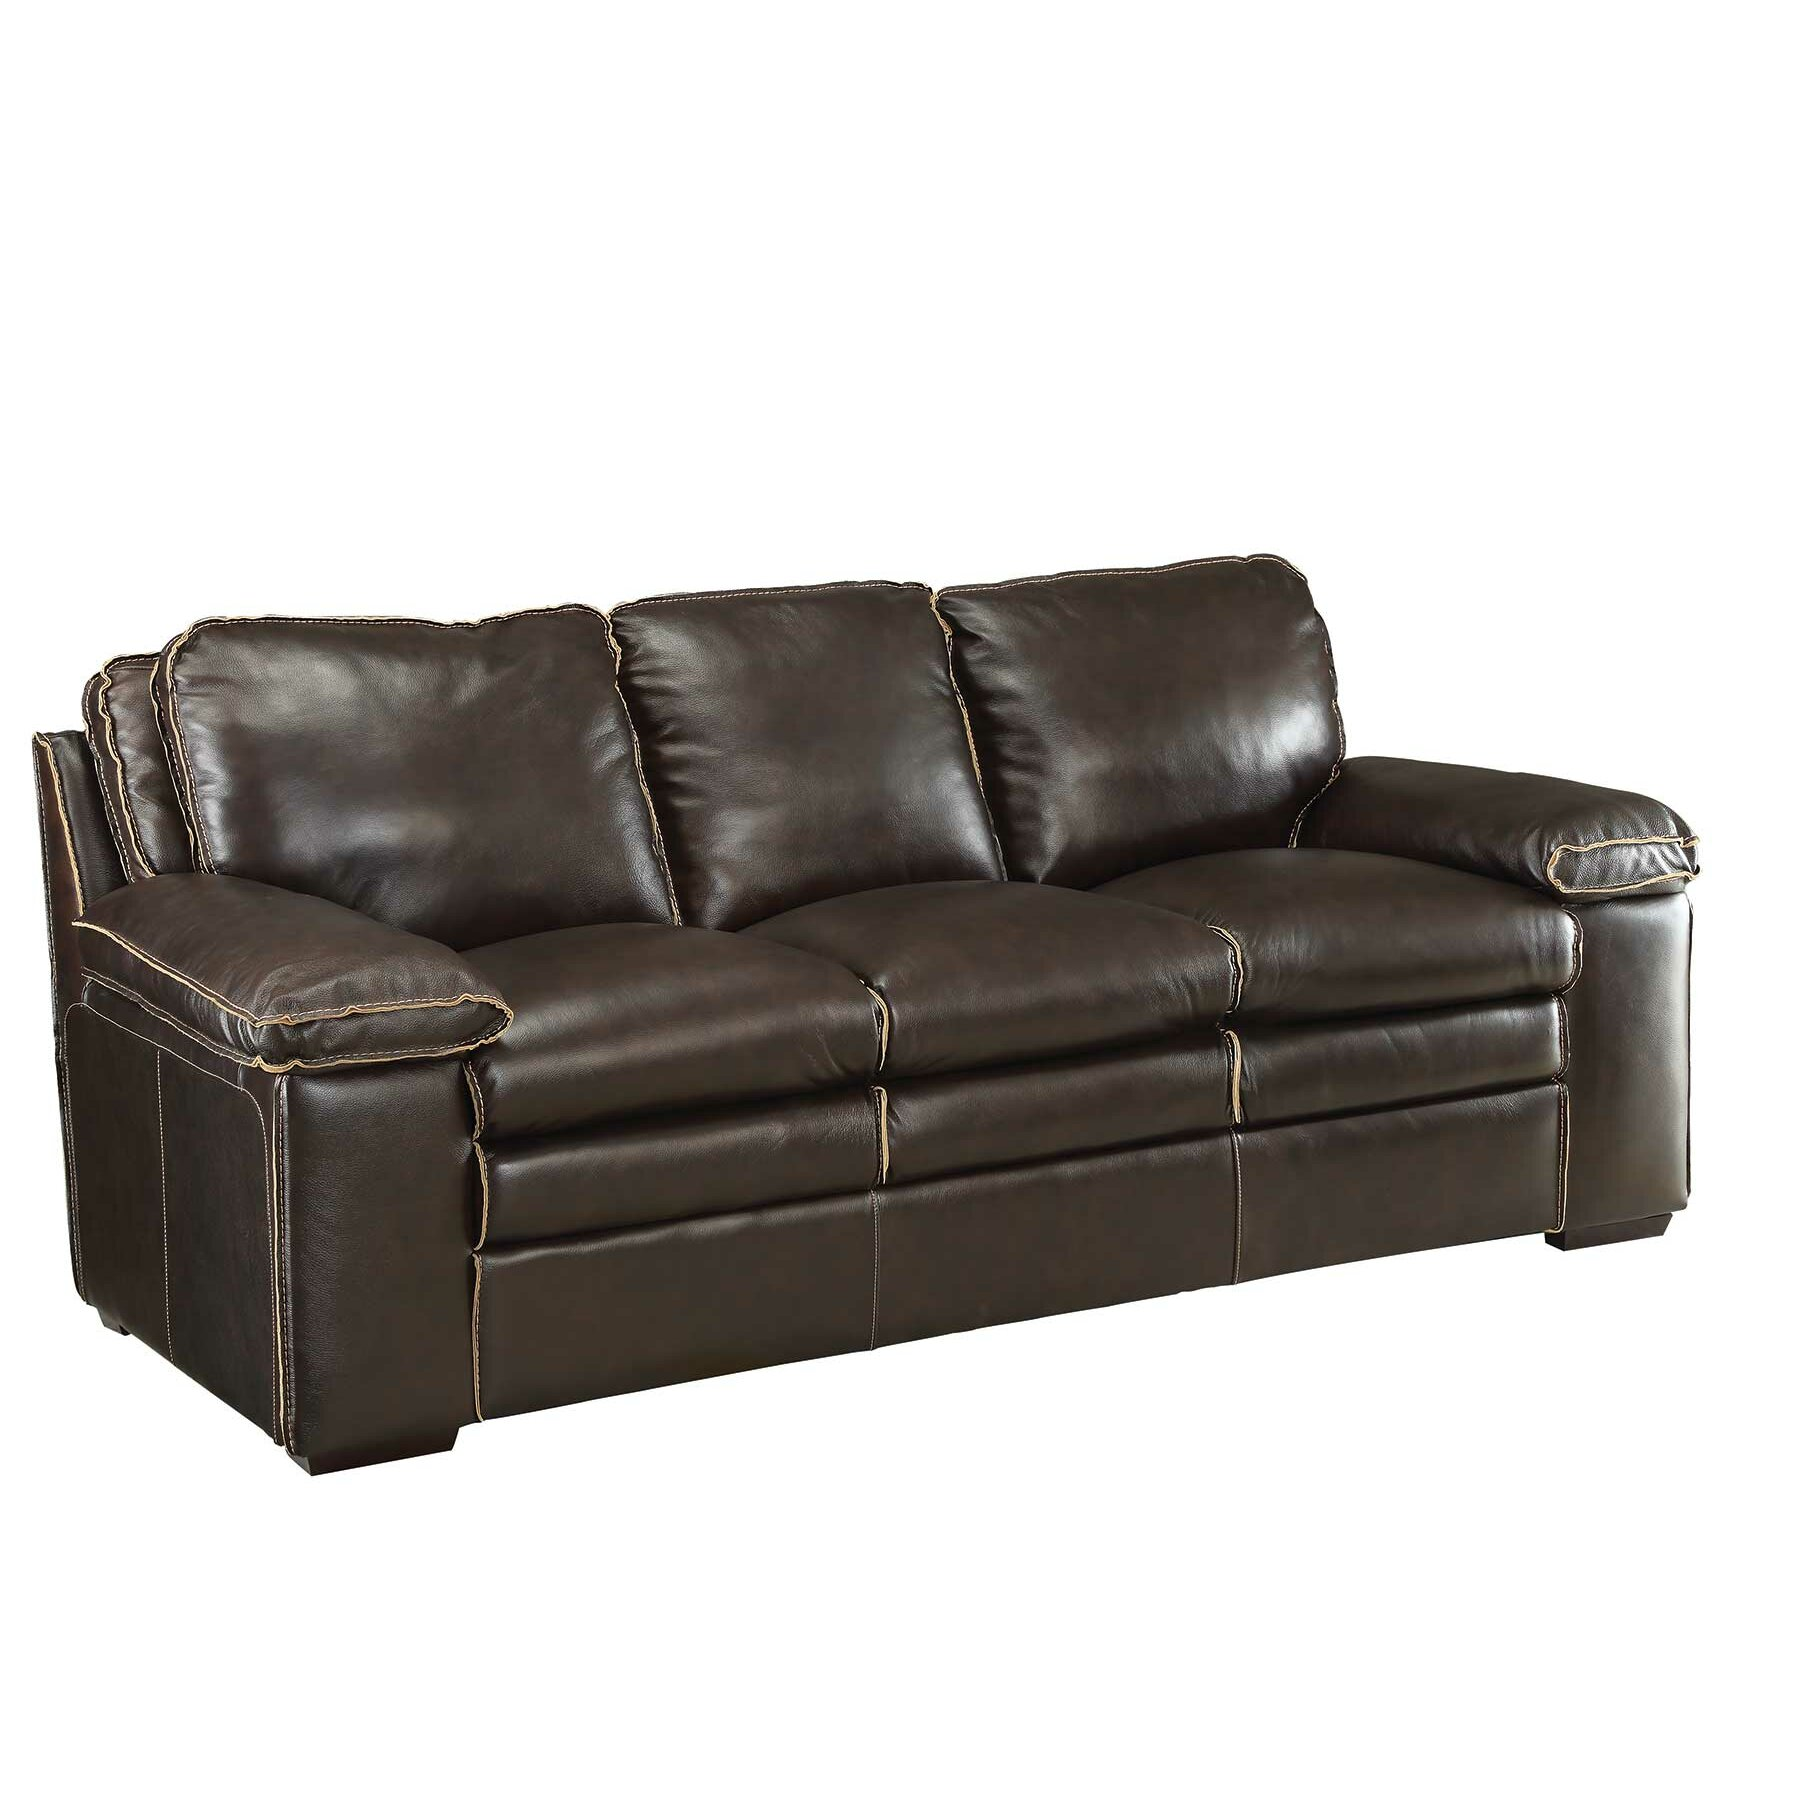 Modular Furniture Sofa: Wildon Home ® Regalvale Leather Modular Sofa